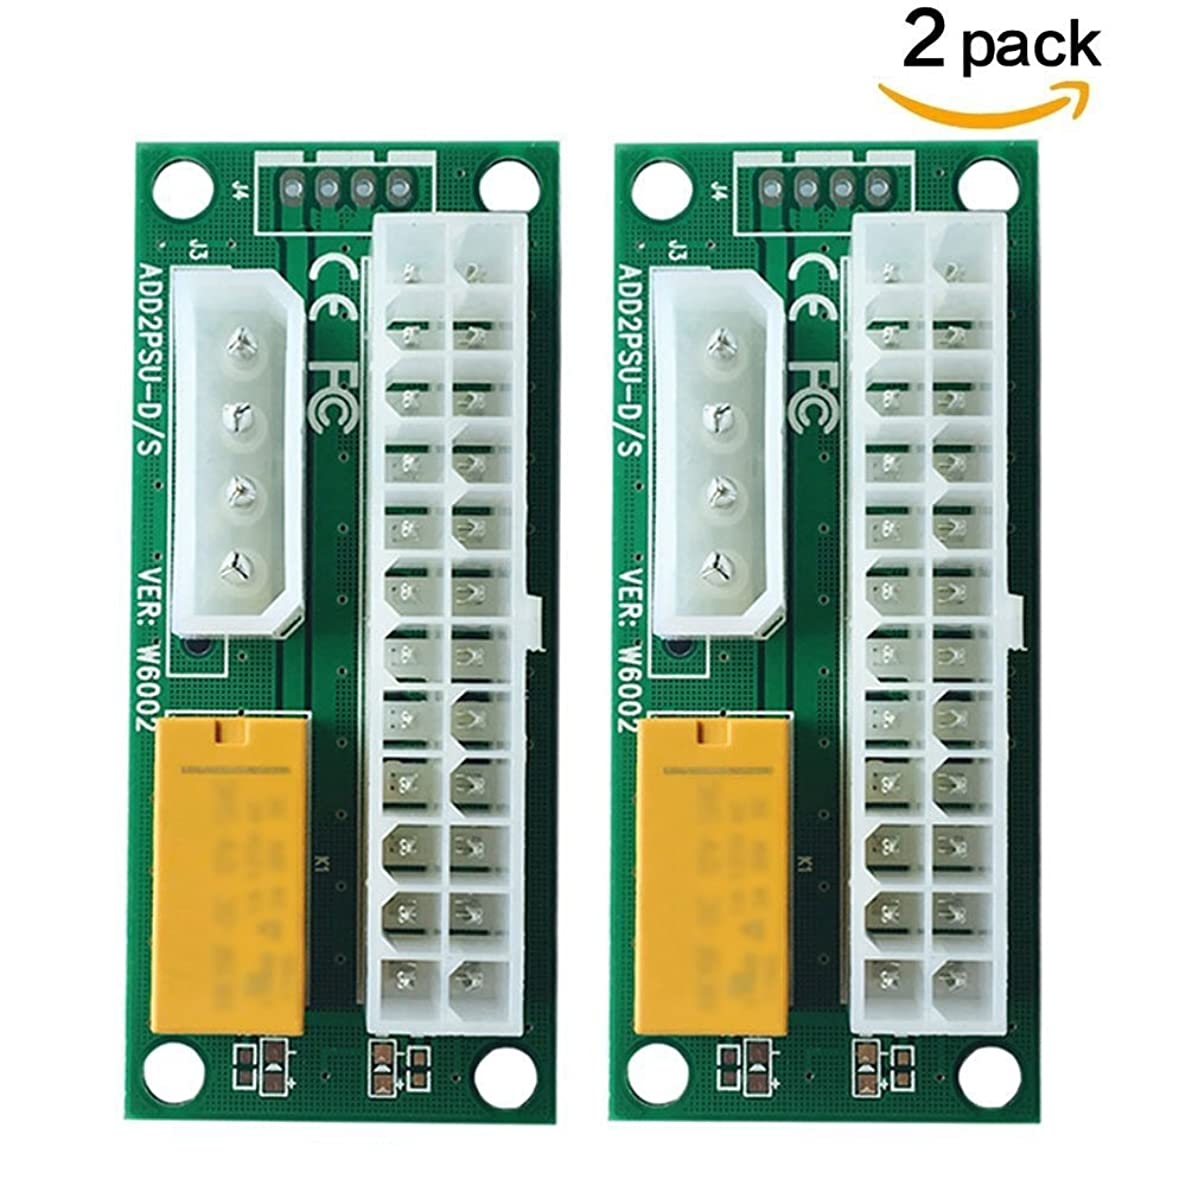 BAY Direct 2-PACK Add2PSU Multiple Power Supply Adapter (ATX 24Pin to Molex 4Pin) and Daisy Chain Connector-Ethereum Mining ETH Rig Dual power supply Connector